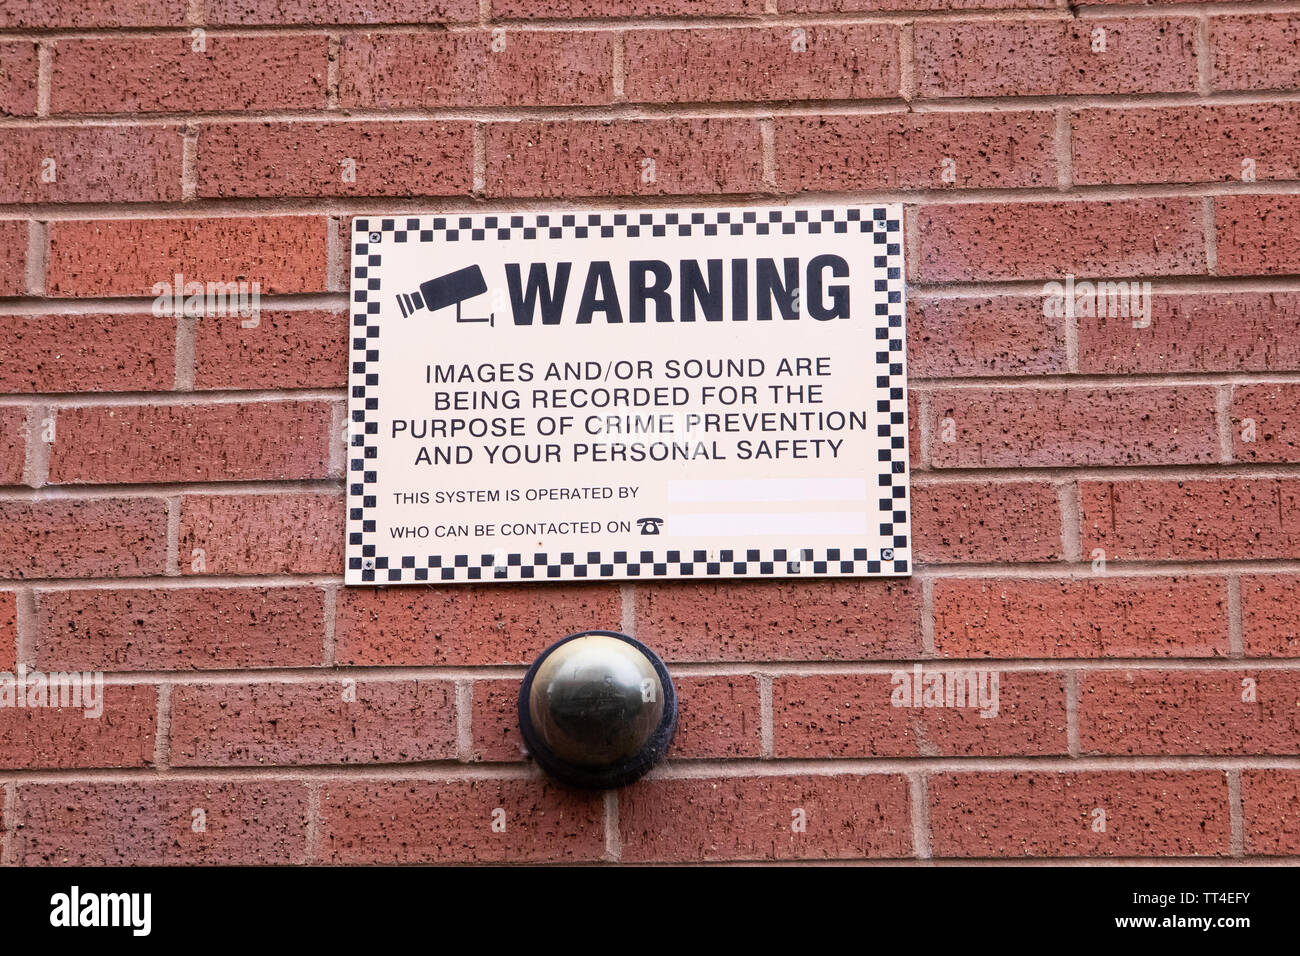 Dome Camera and CCTV Warning Sign - Stock Image